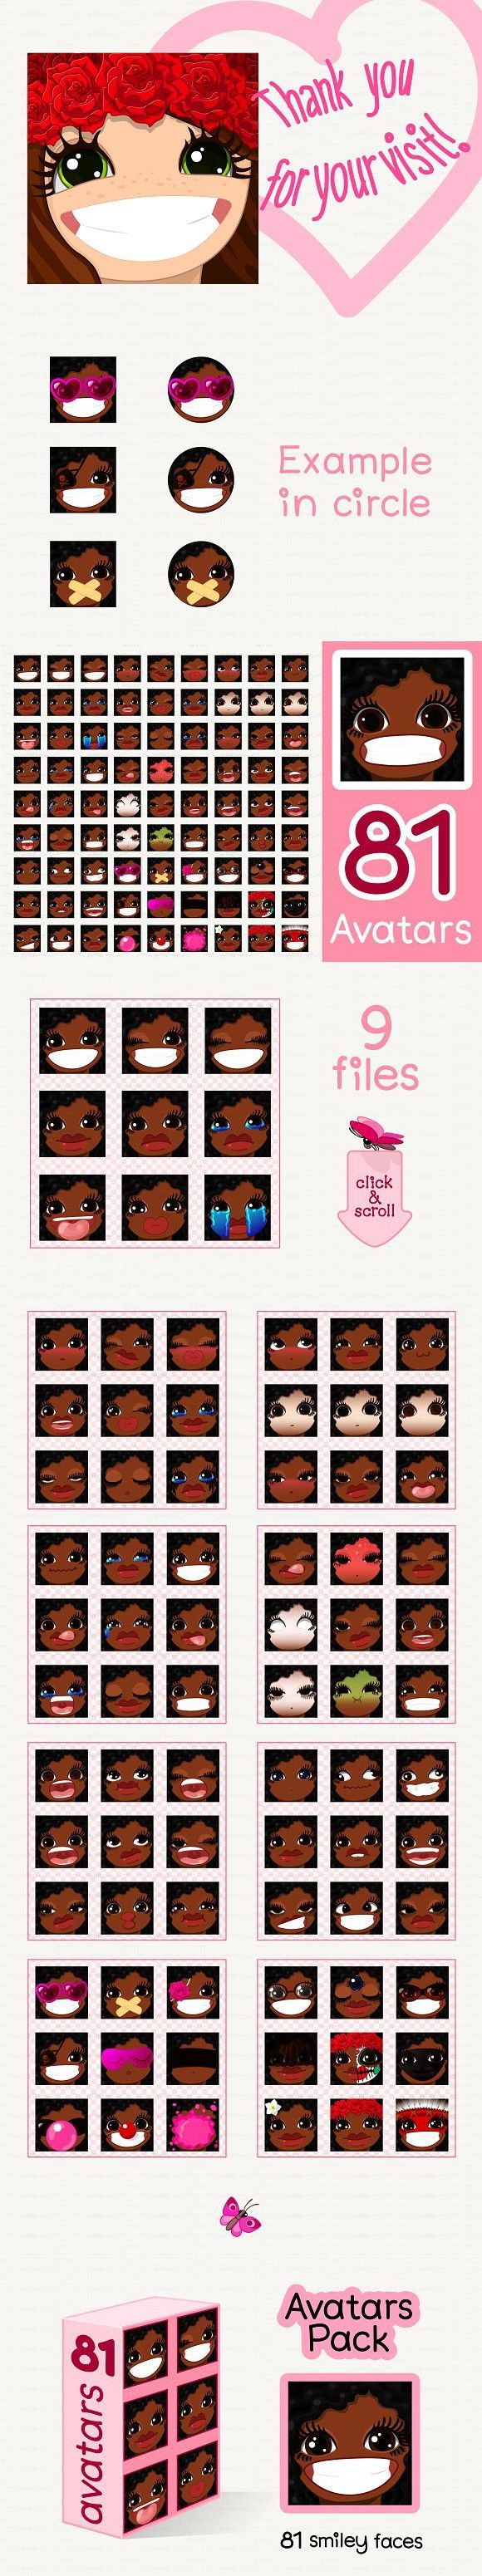 ♥ vector Avatars Pack 81 | Funny Emoticons Design | Smiley